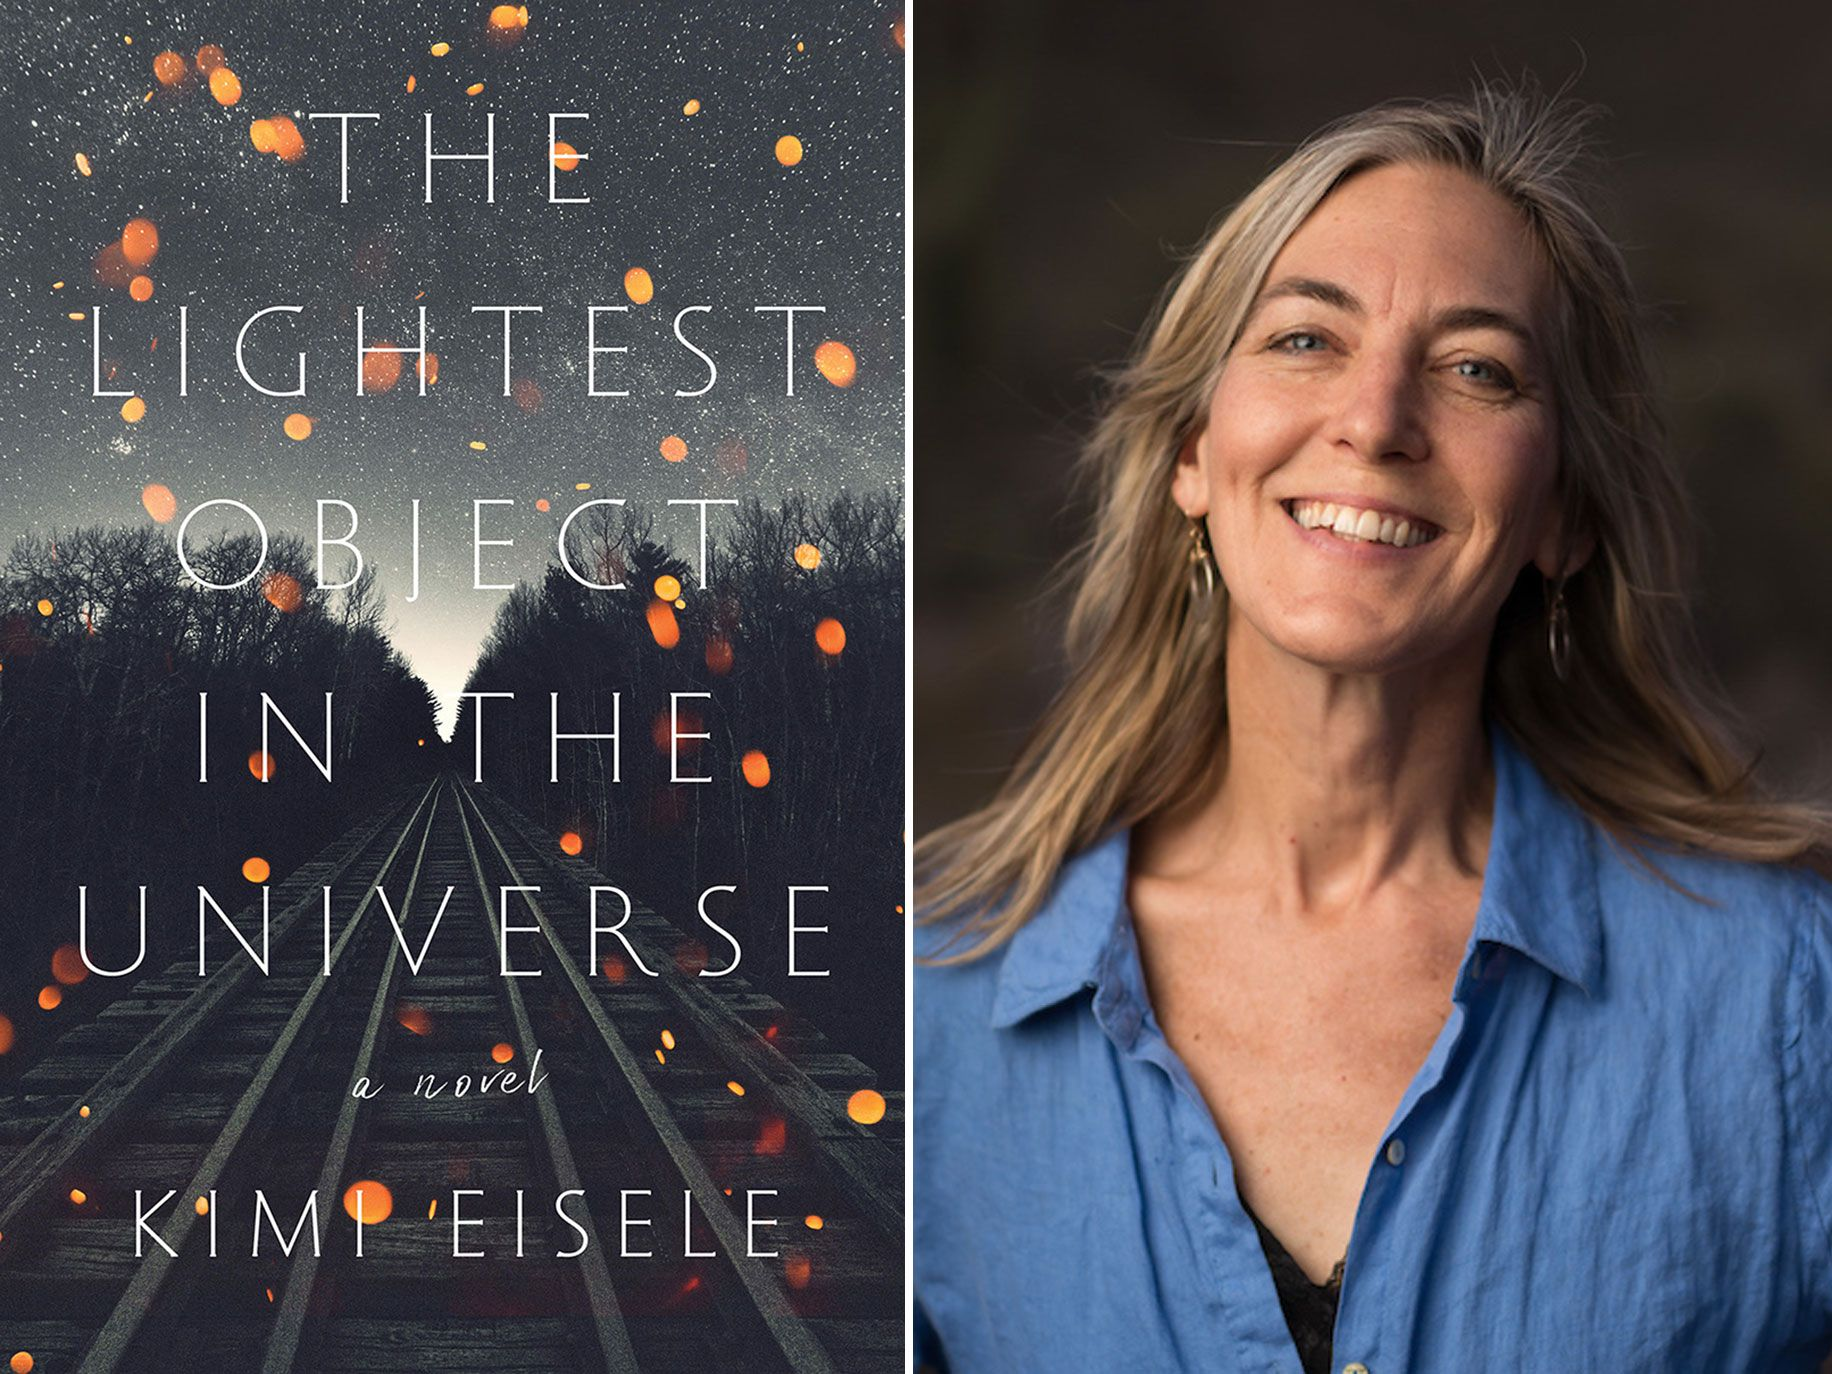 """In a surprising coincidence, the cover image for """"The Lightest Object in the Universe"""" looked eerily like a piece of artwork Kimi Eisele had made for her book — and never showed anyone."""